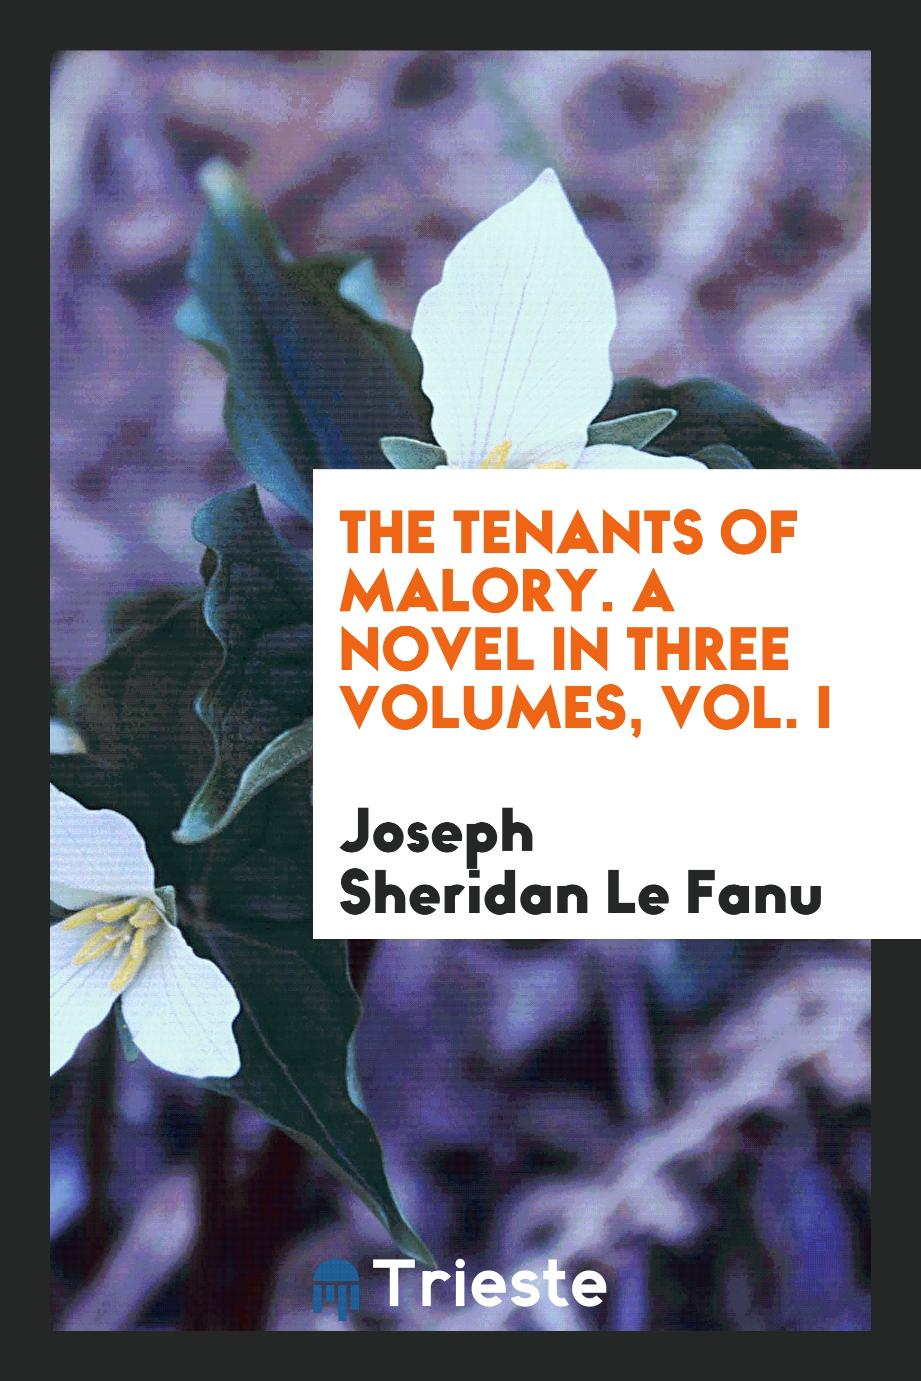 The tenants of Malory. A novel in three volumes, Vol. I